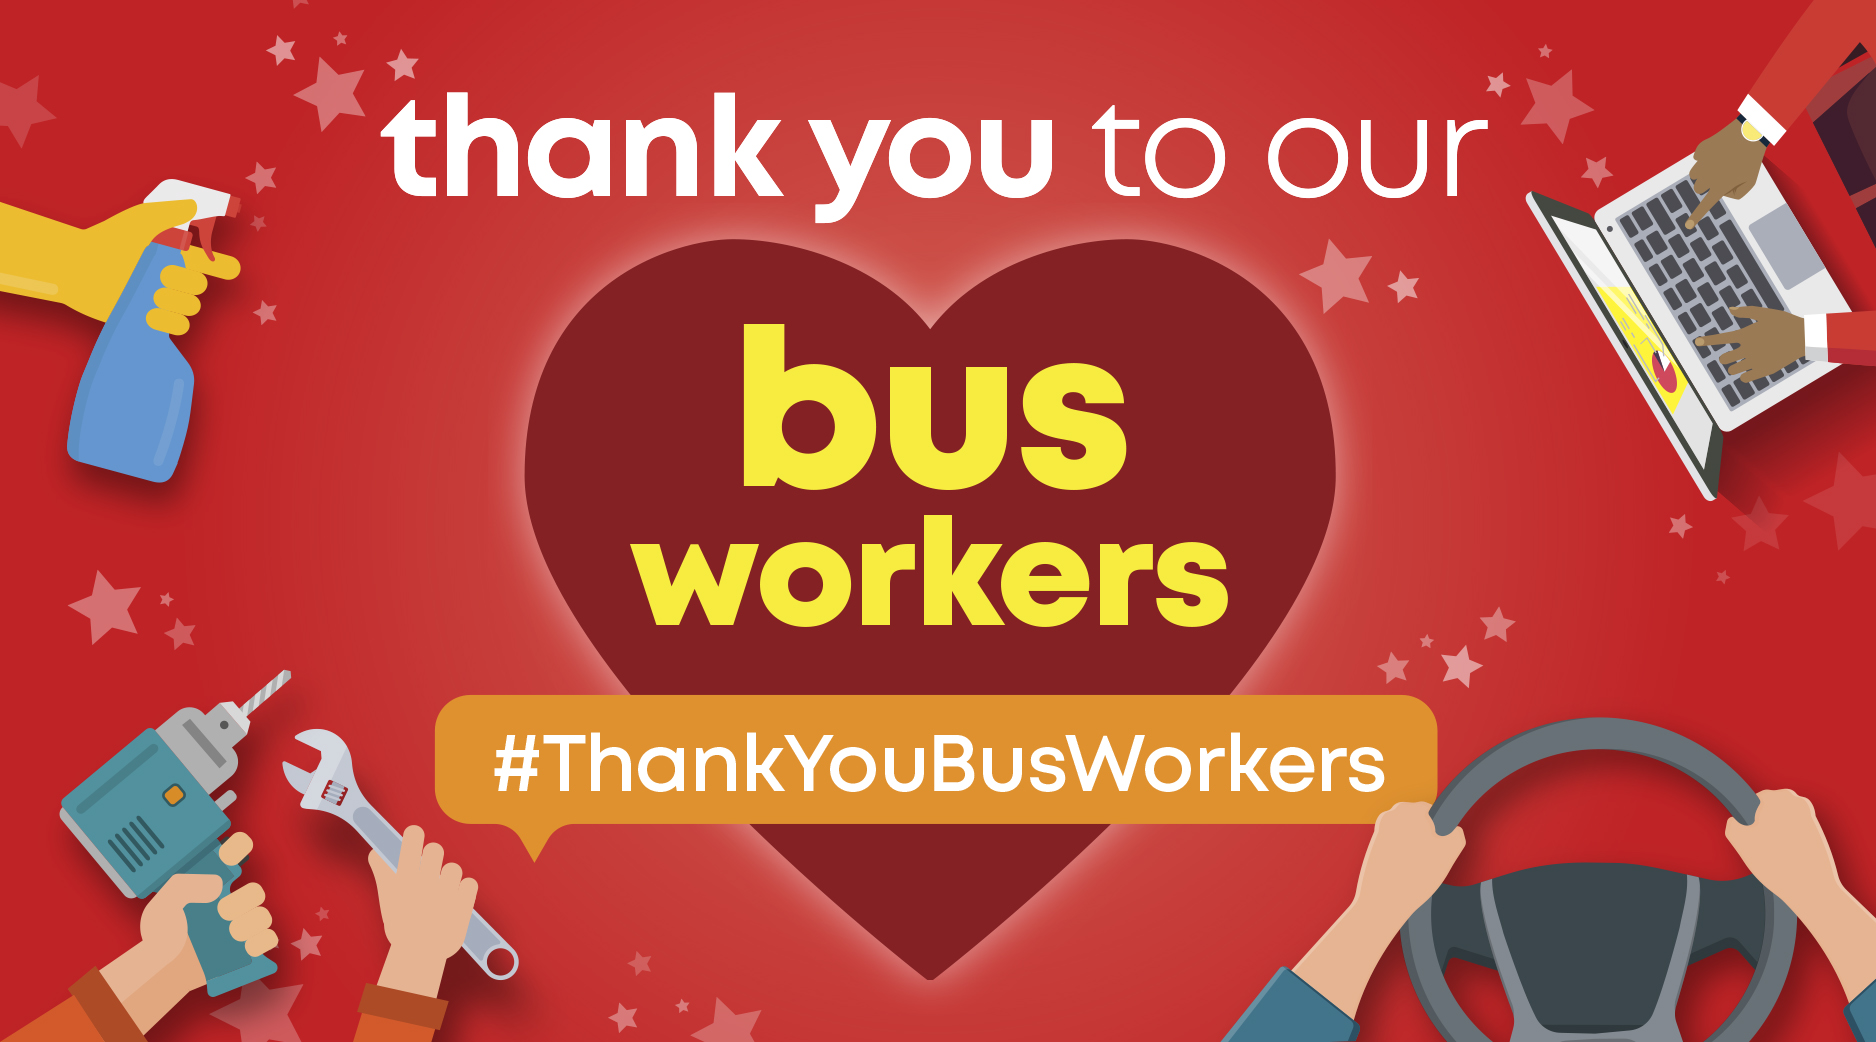 #ThankYouBusWorkers Campaign